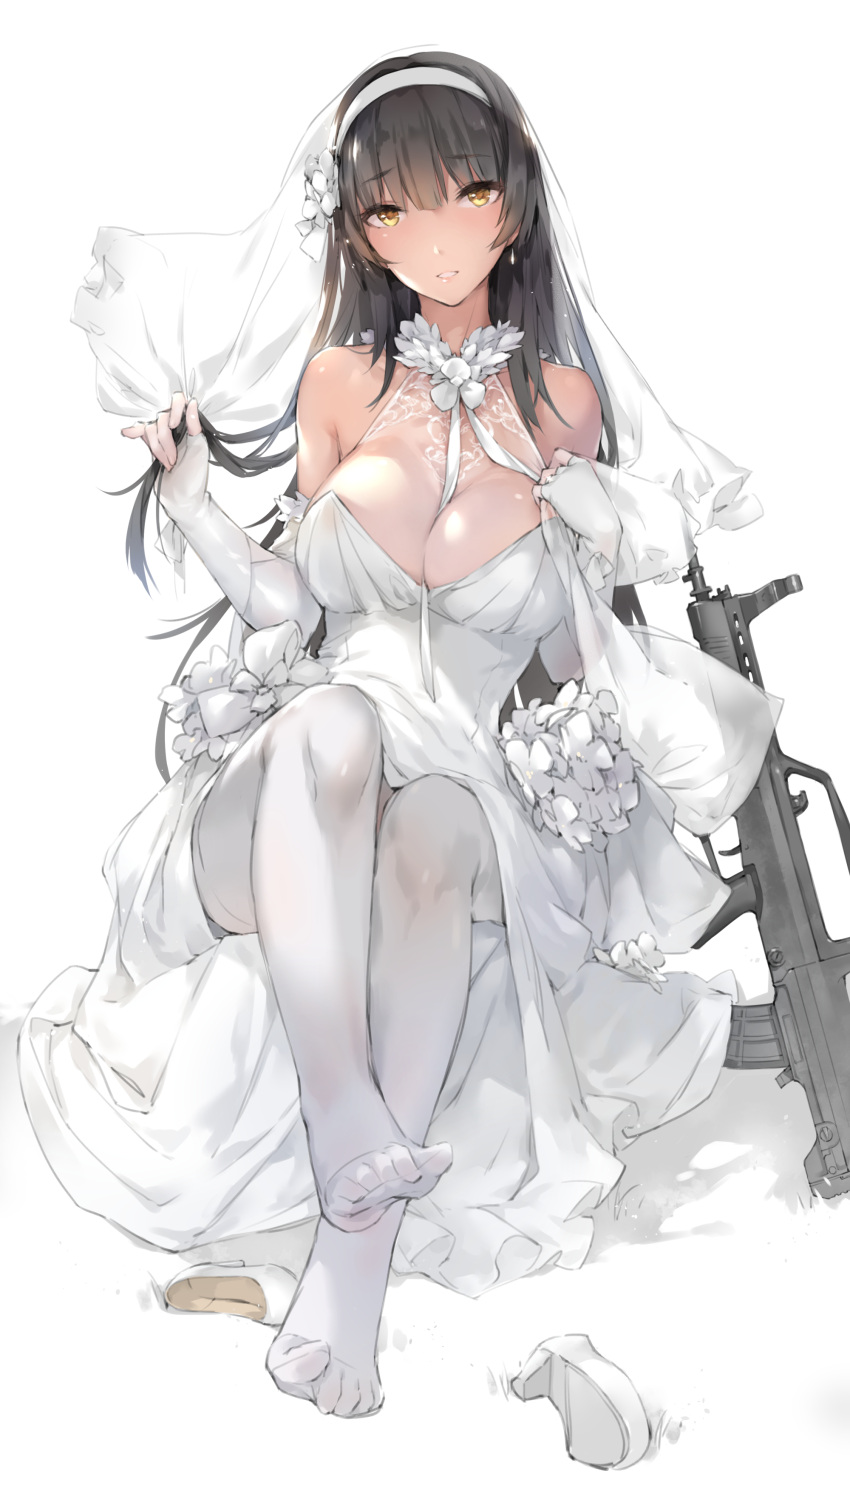 1girl absurdres assault_rifle bangs between_breasts black_hair blunt_bangs breasts bridal_veil bullpup cleavage commentary_request dress elbow_gloves feet fingerless_gloves flower full_body girls_frontline gloves gun hair_flower hair_ornament hairband high_heels highres holding holding_hair jewelry large_breasts long_hair looking_at_viewer pantyhose qbz-95 qbz-95_(girls_frontline) rifle ring shoes_removed simple_background sitting solo veil weapon wedding_band wedding_dress white_background white_dress white_footwear white_gloves white_hairband white_legwear xie_yizhen yellow_eyes